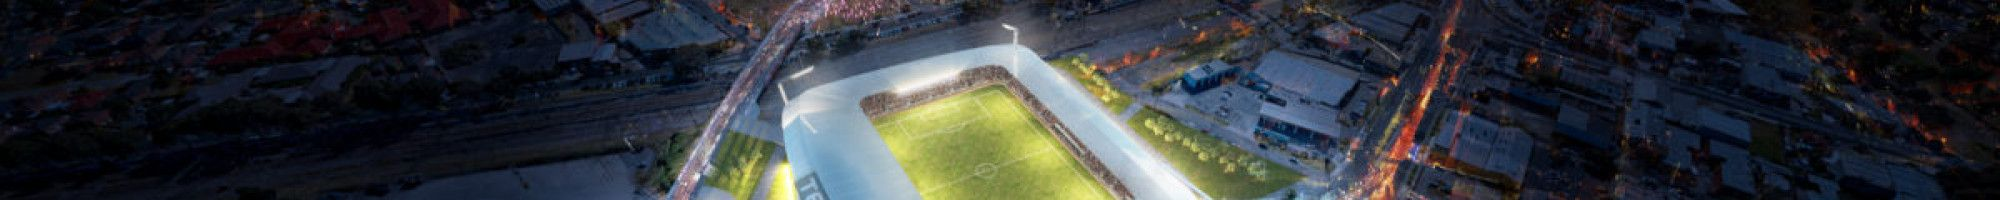 Proposed Dandenong Stadium